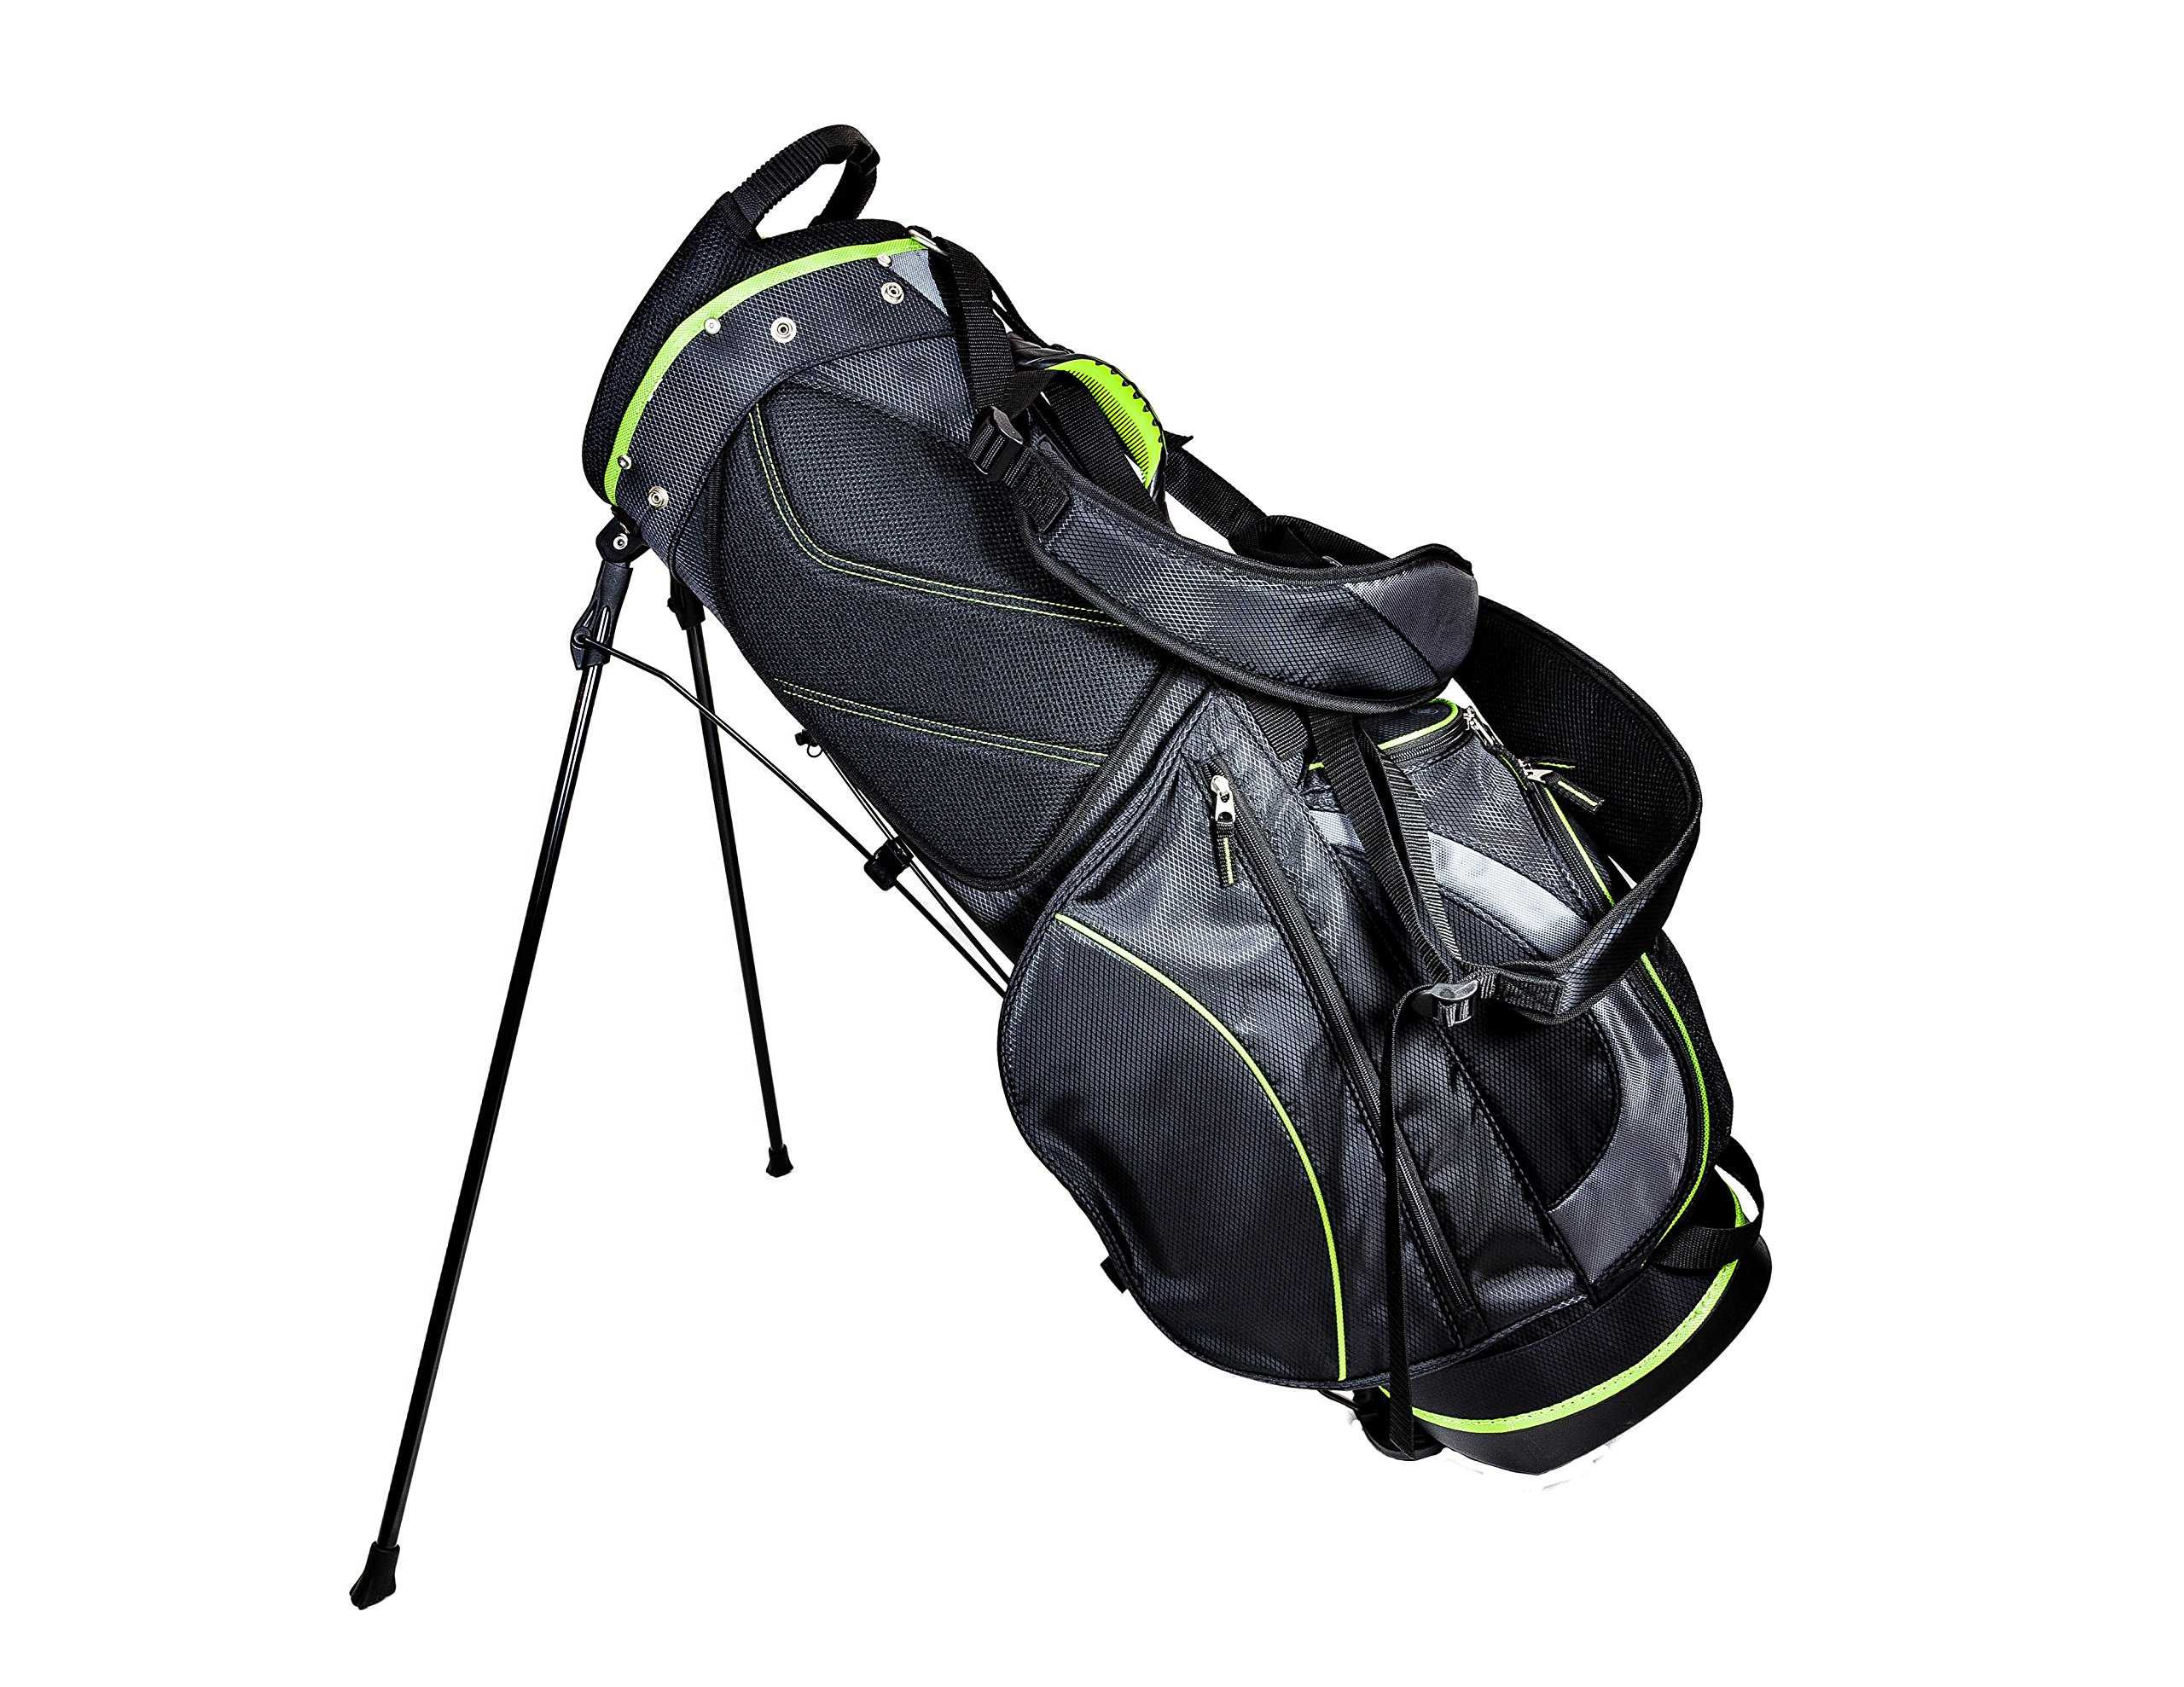 Club Champ Deluxe Stand Golf Bag, Black/Green by Club Champ